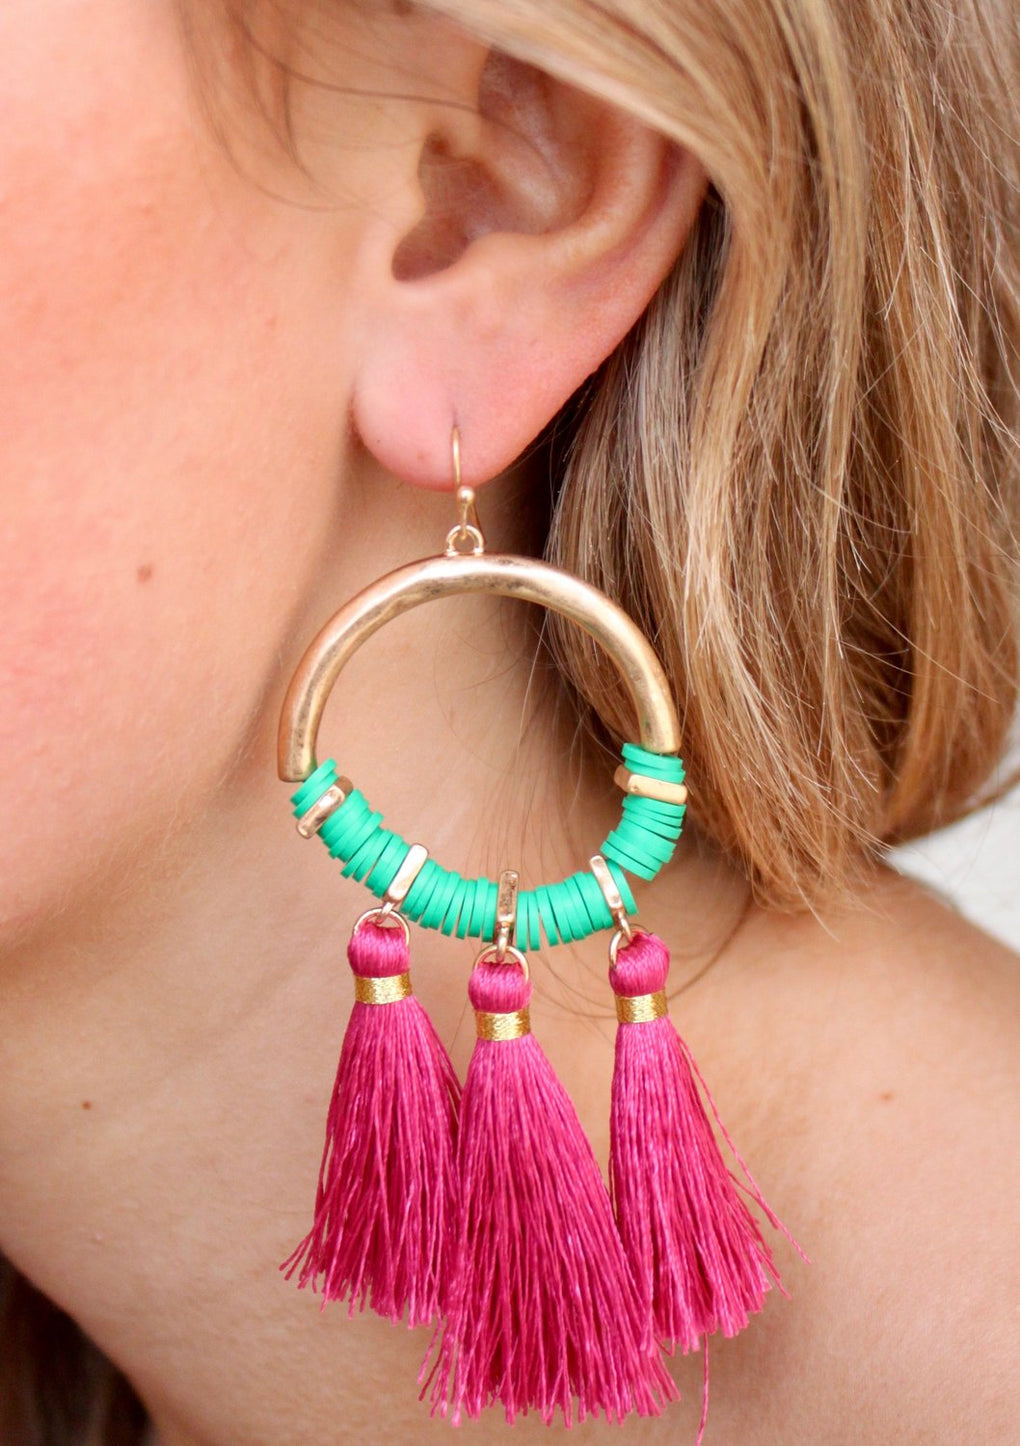 CAROLINE HILL - GALVIN METAL RING AND COLORED BEAD DROP EARRING WITH FABRIC TASSELS-FUSCHIA